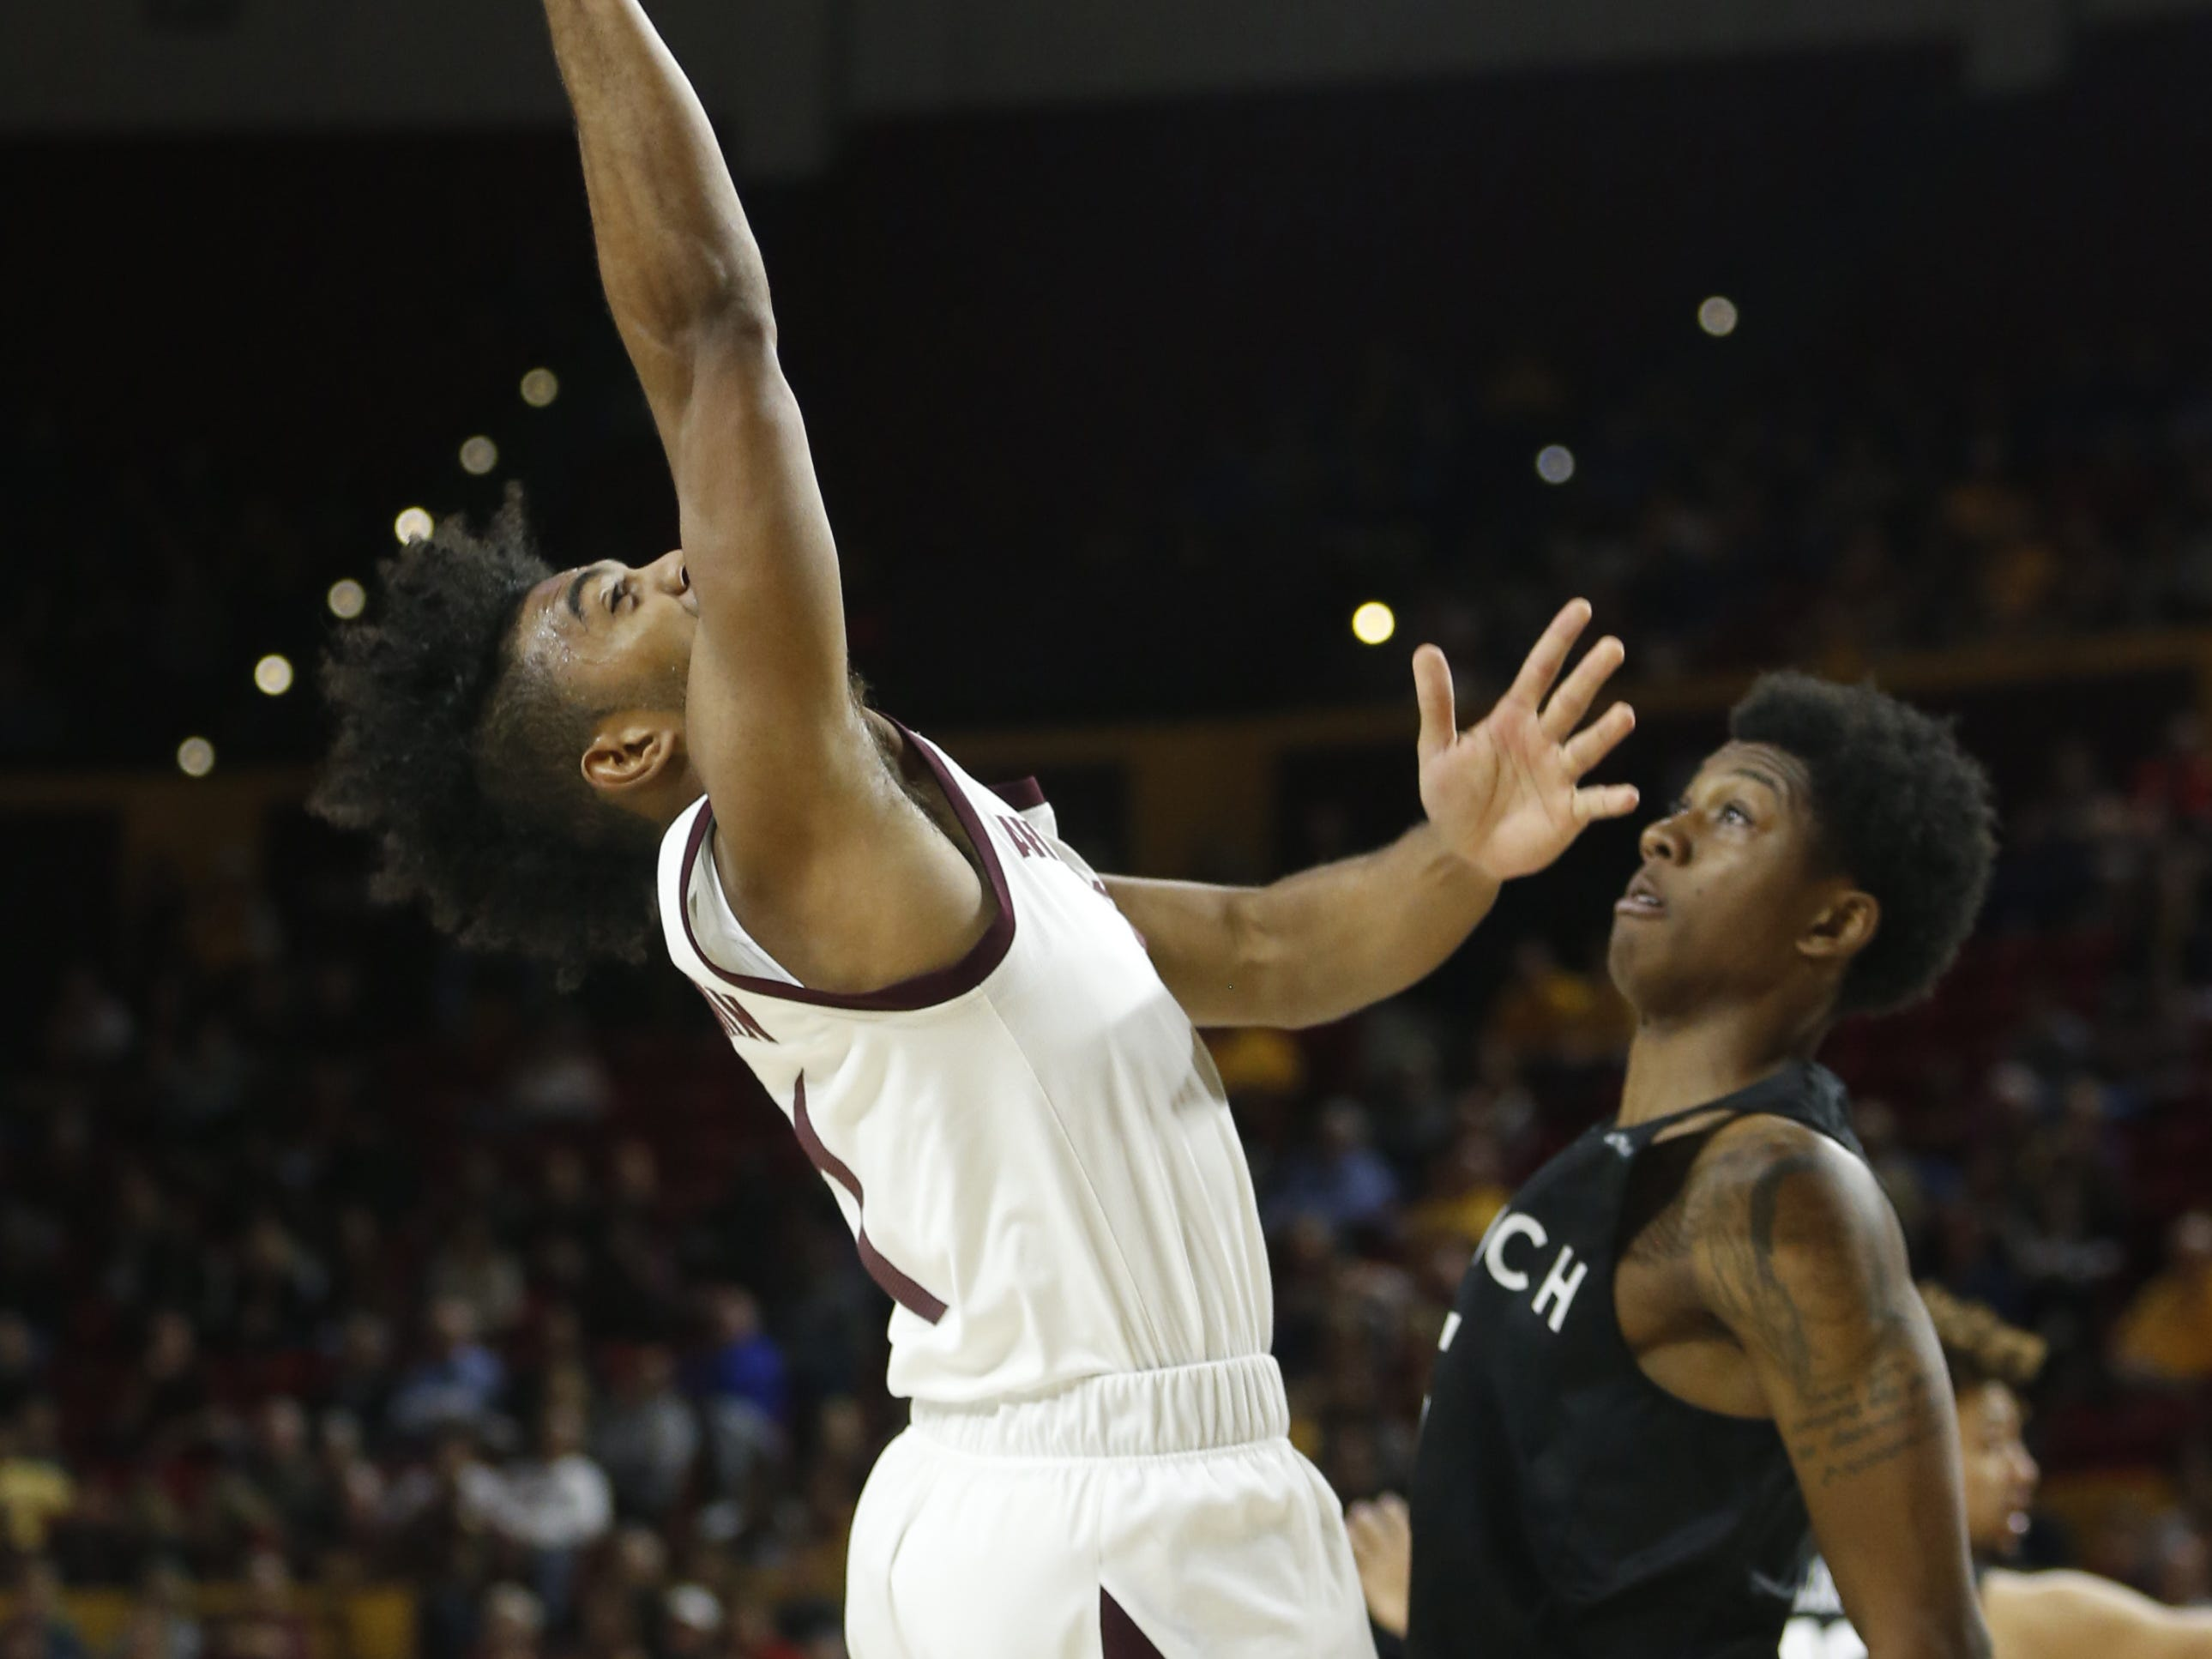 Arizona State's Remy Martin (1) goes up for a layup past Long Beach State's Deishuan Booker (15) during the first half at Wells Fargo Arena in Tempe, Ariz. on November 12, 2018.